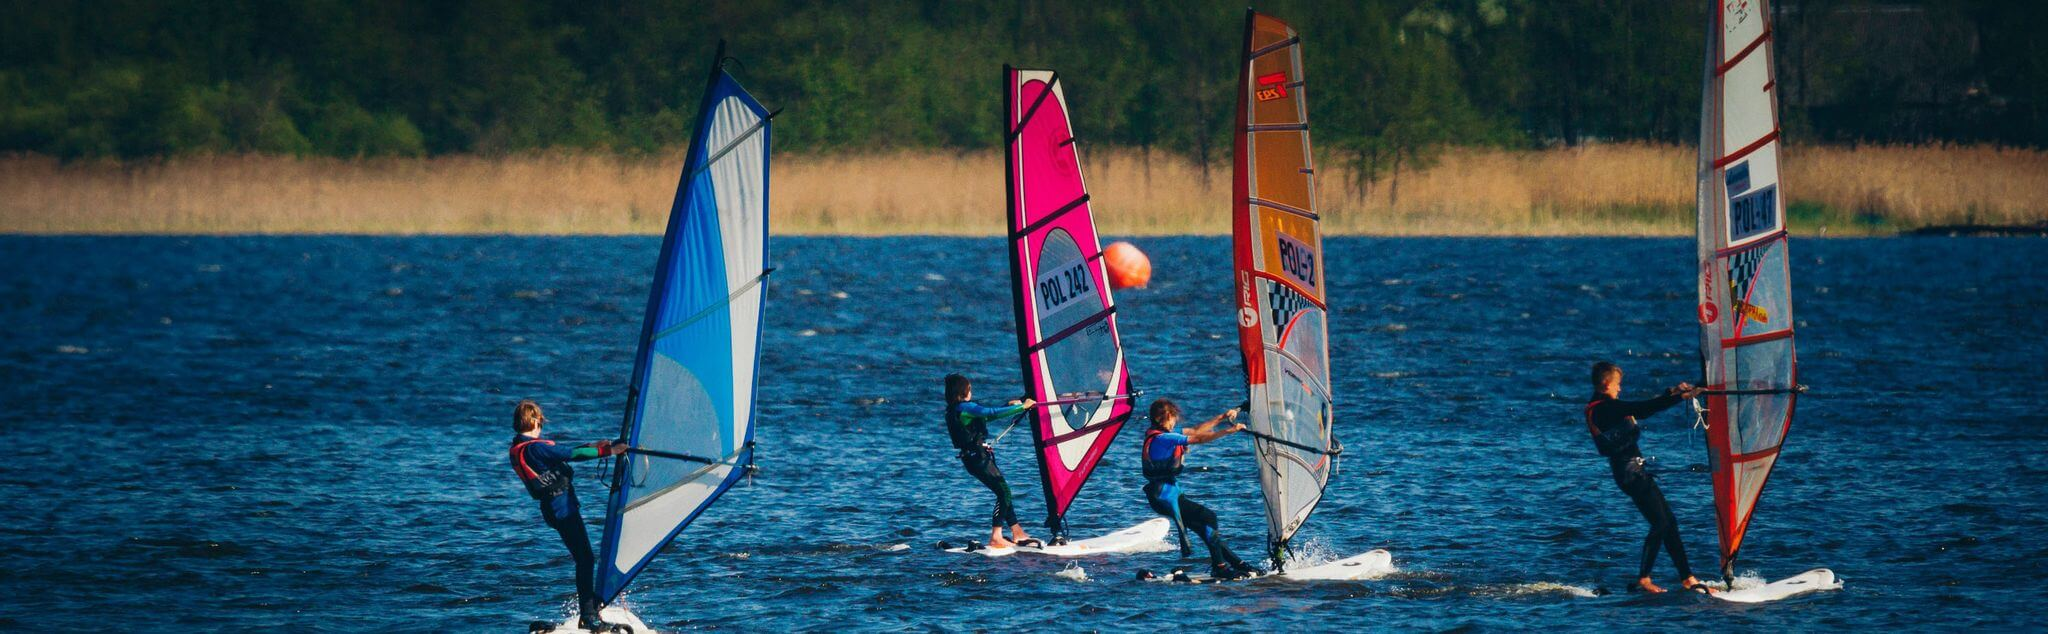 Windsurf en Madrid